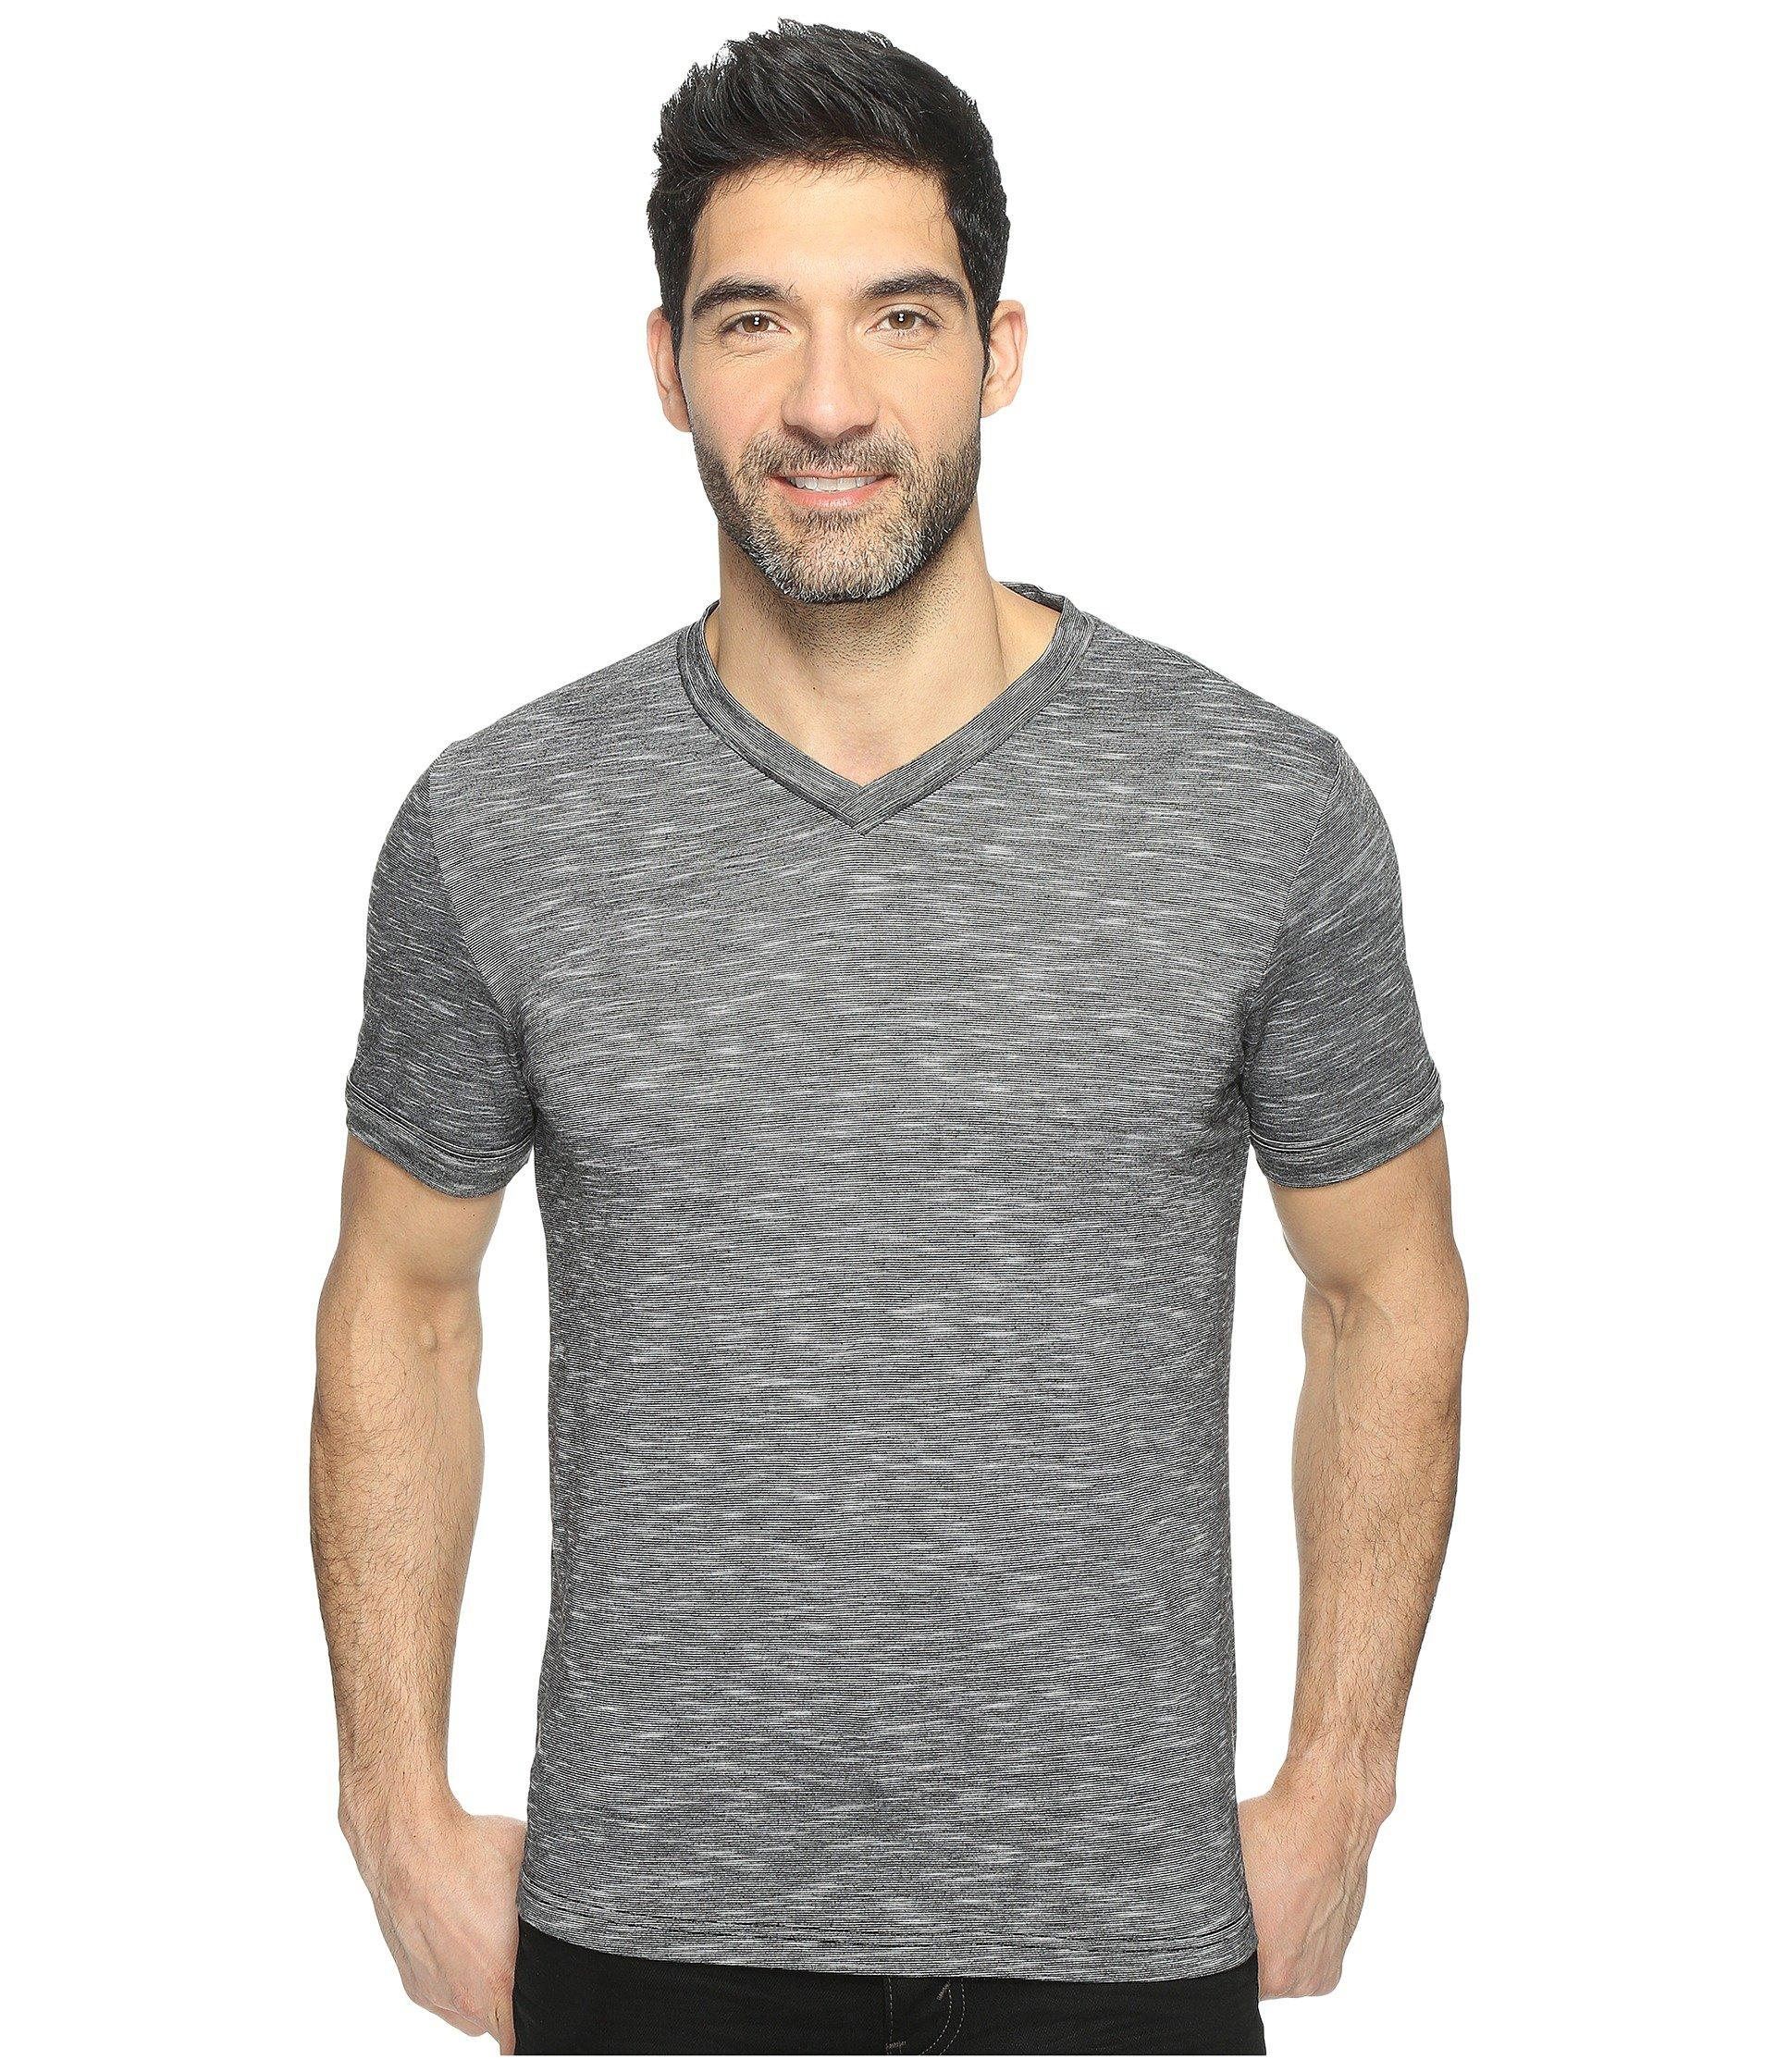 a9ae2561fc Lyst - Perry Ellis Texture Slub V-neck Tee Shirt in Black for Men